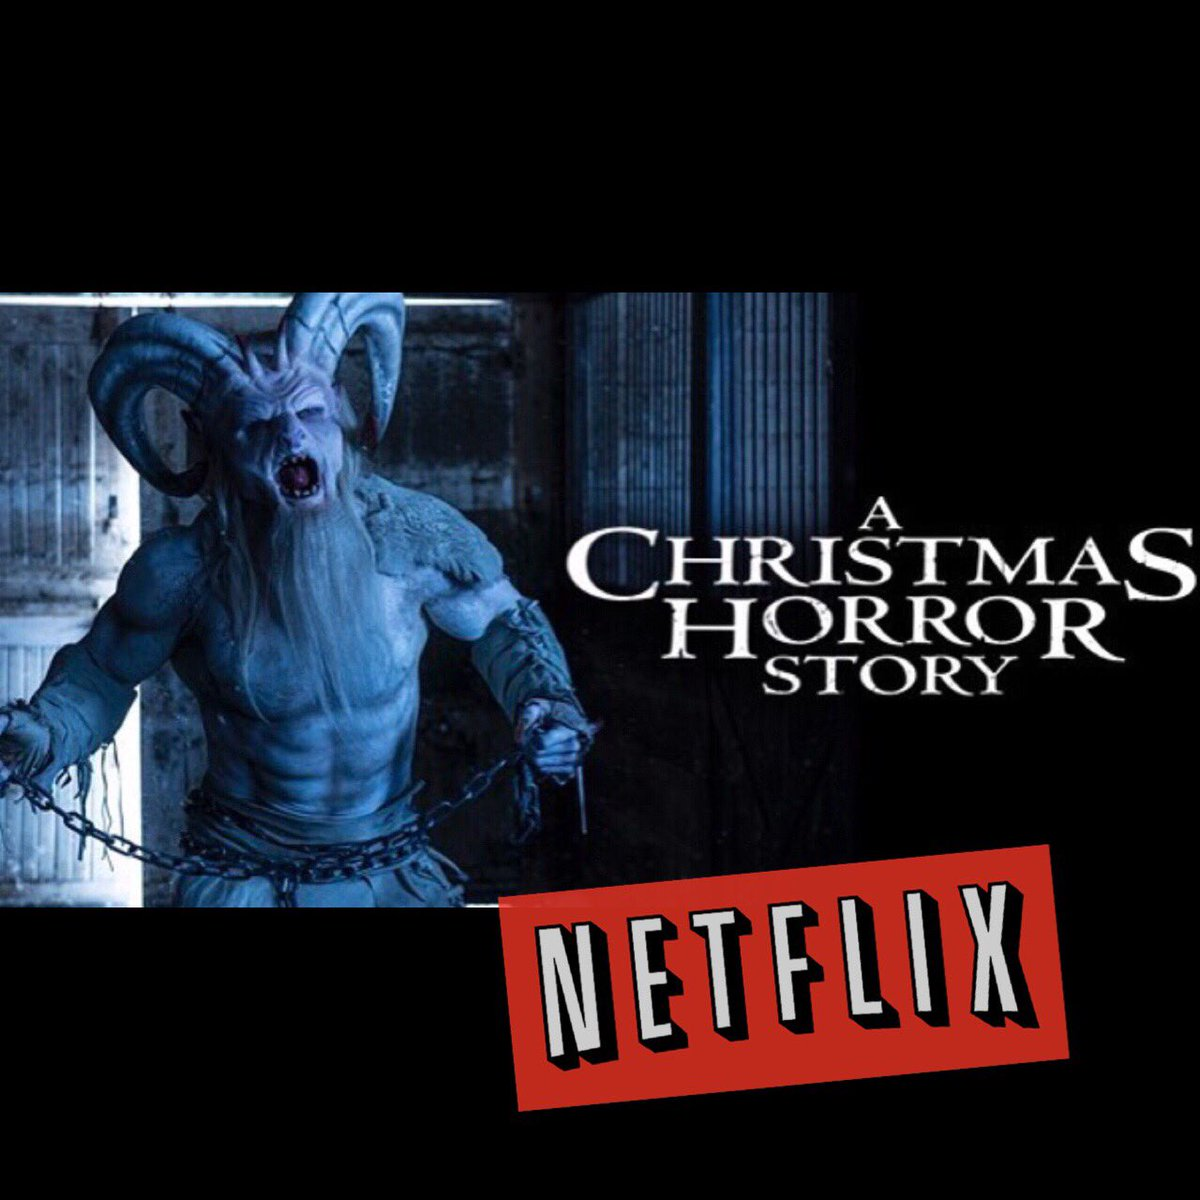 "Rob Archer on Twitter: ""A Christmas Horror Story is now avail on #NetFlix Don't forget to watch THE BEST Xmas horror film ever made #Christmas #horror ..."